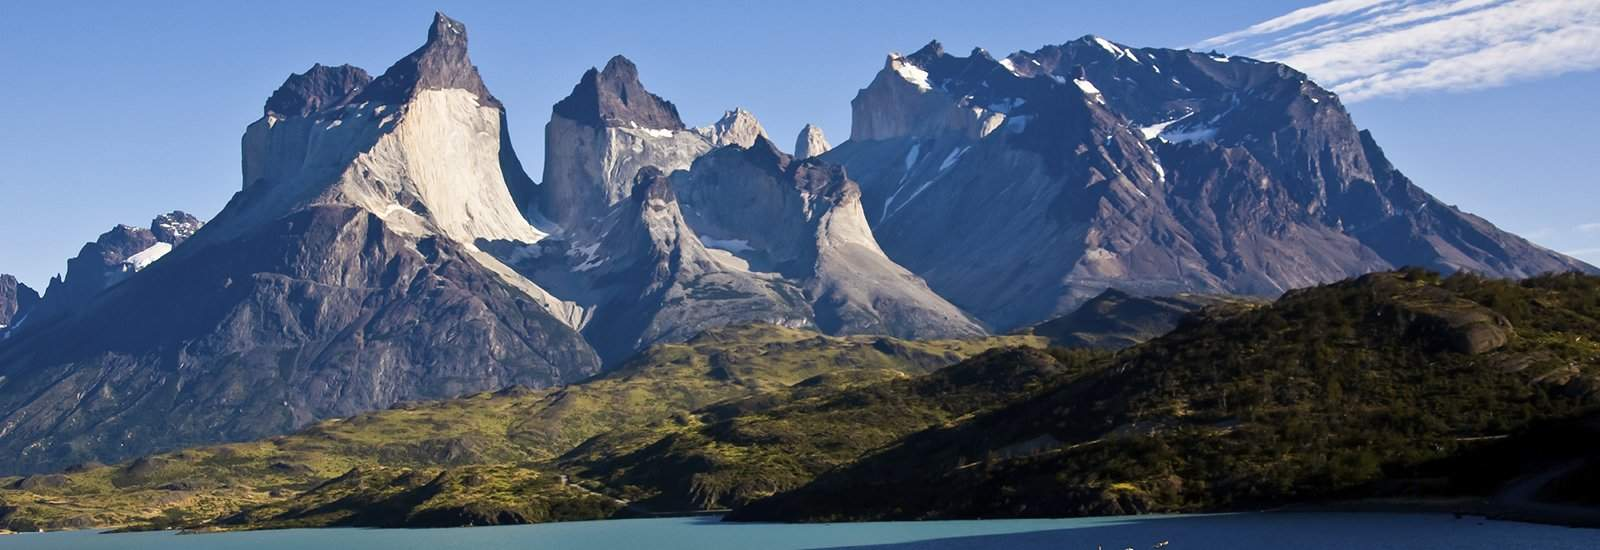 Image Andes-mountains-Torres-del-Paine-Chile